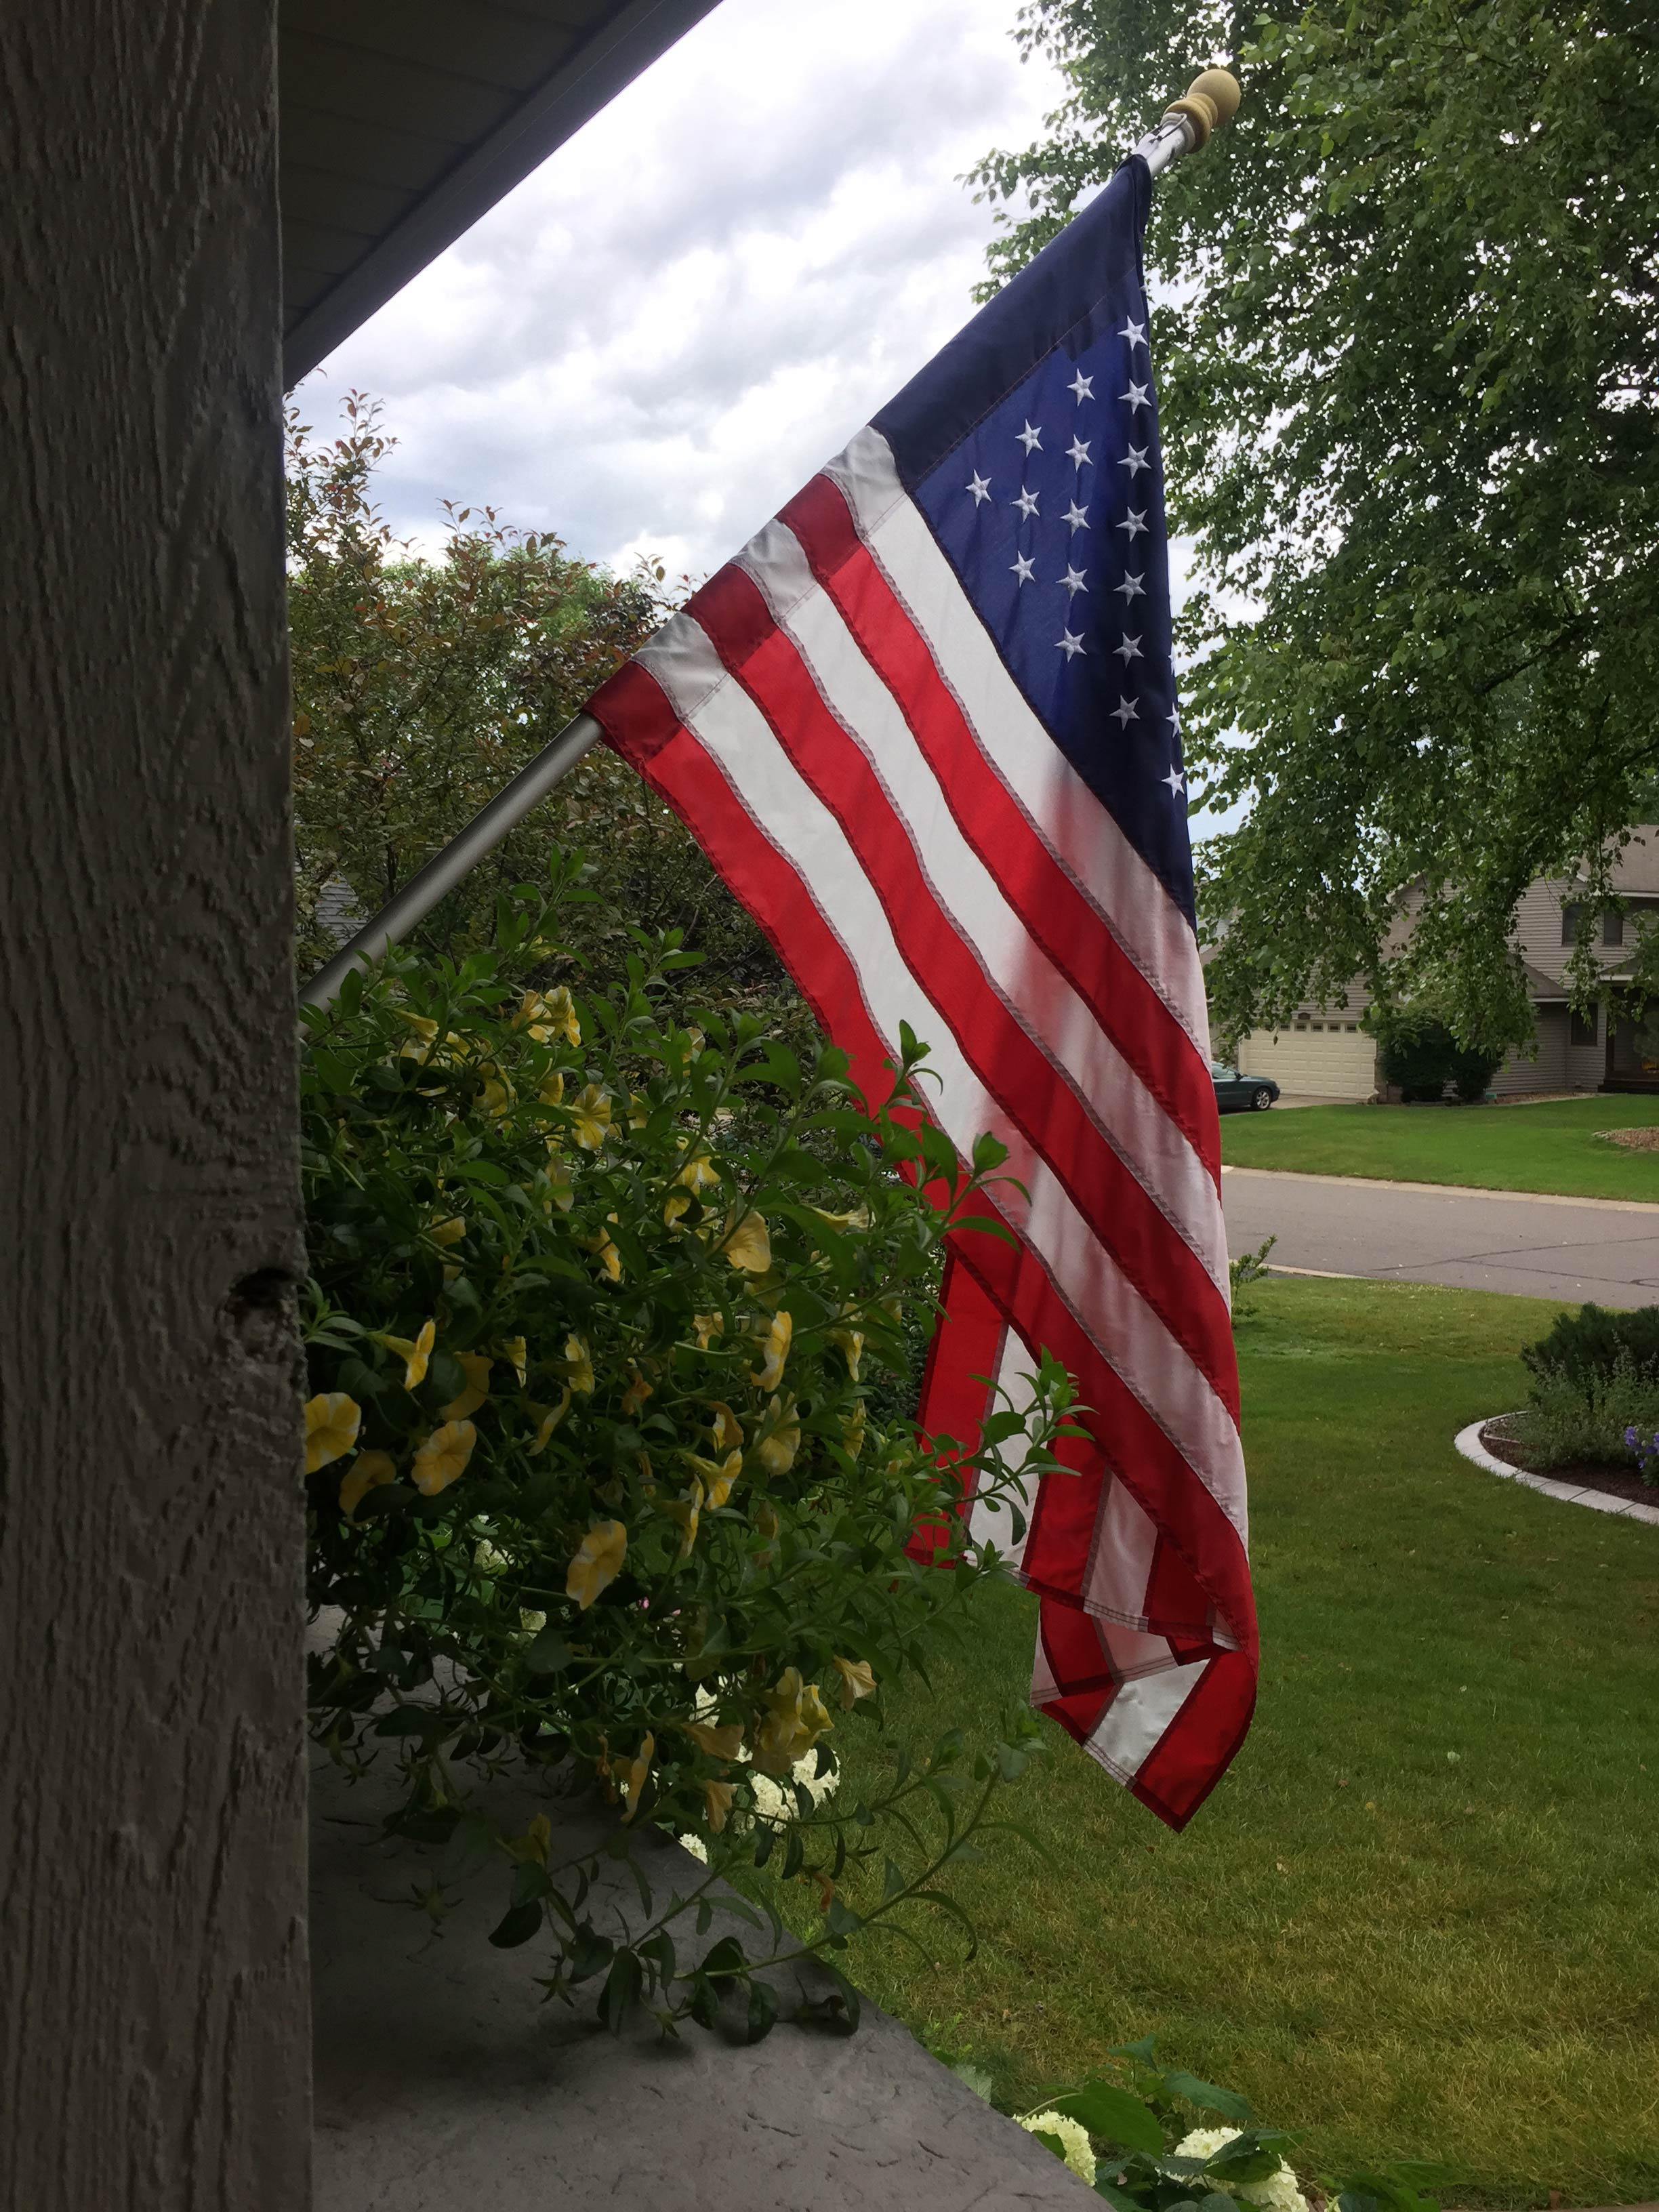 Most homes have US flags flying outside them. (9NEWS)